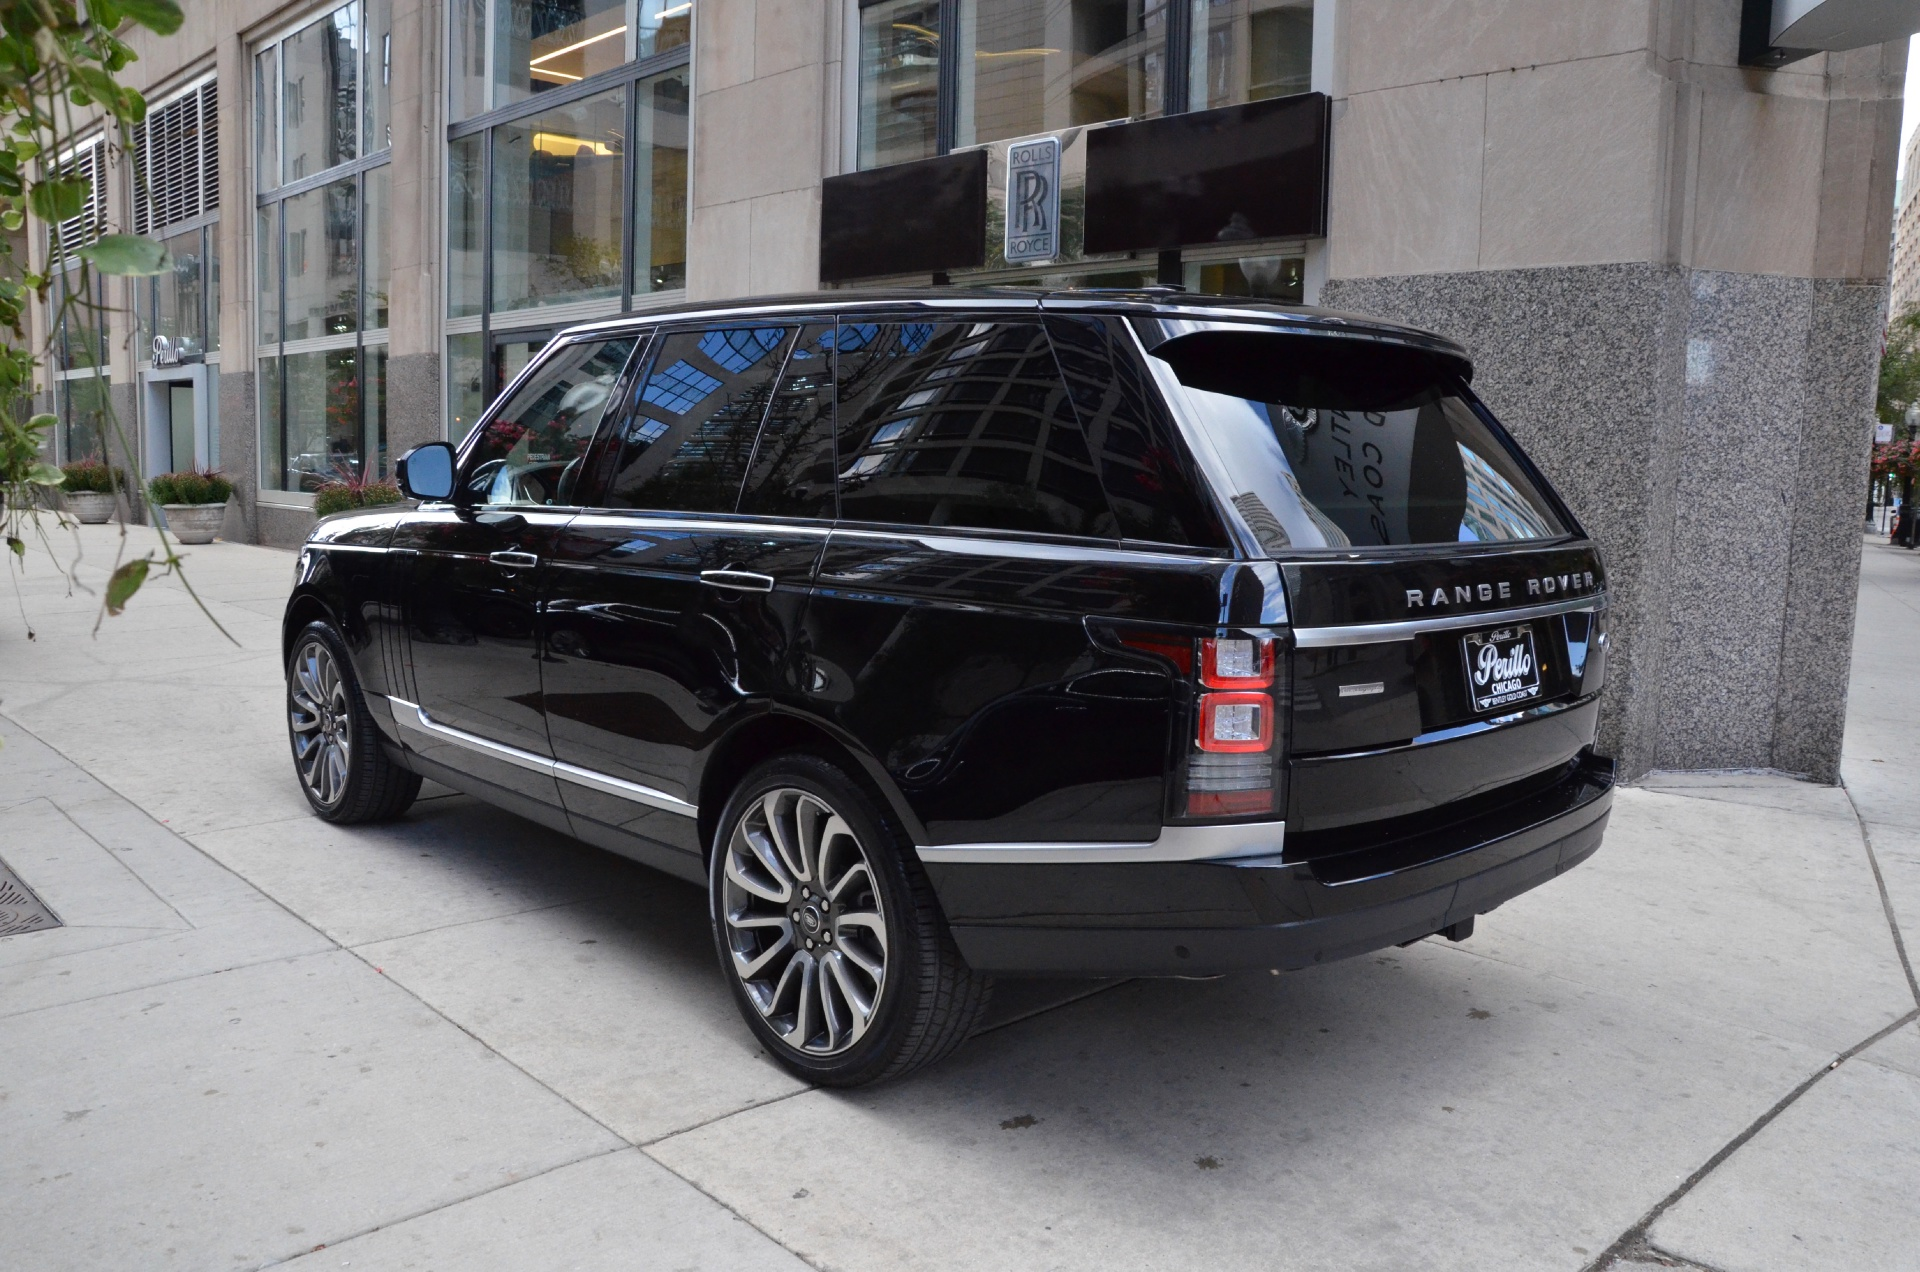 2014 Land Rover Range Rover Autobiography Stock GC1529 S for